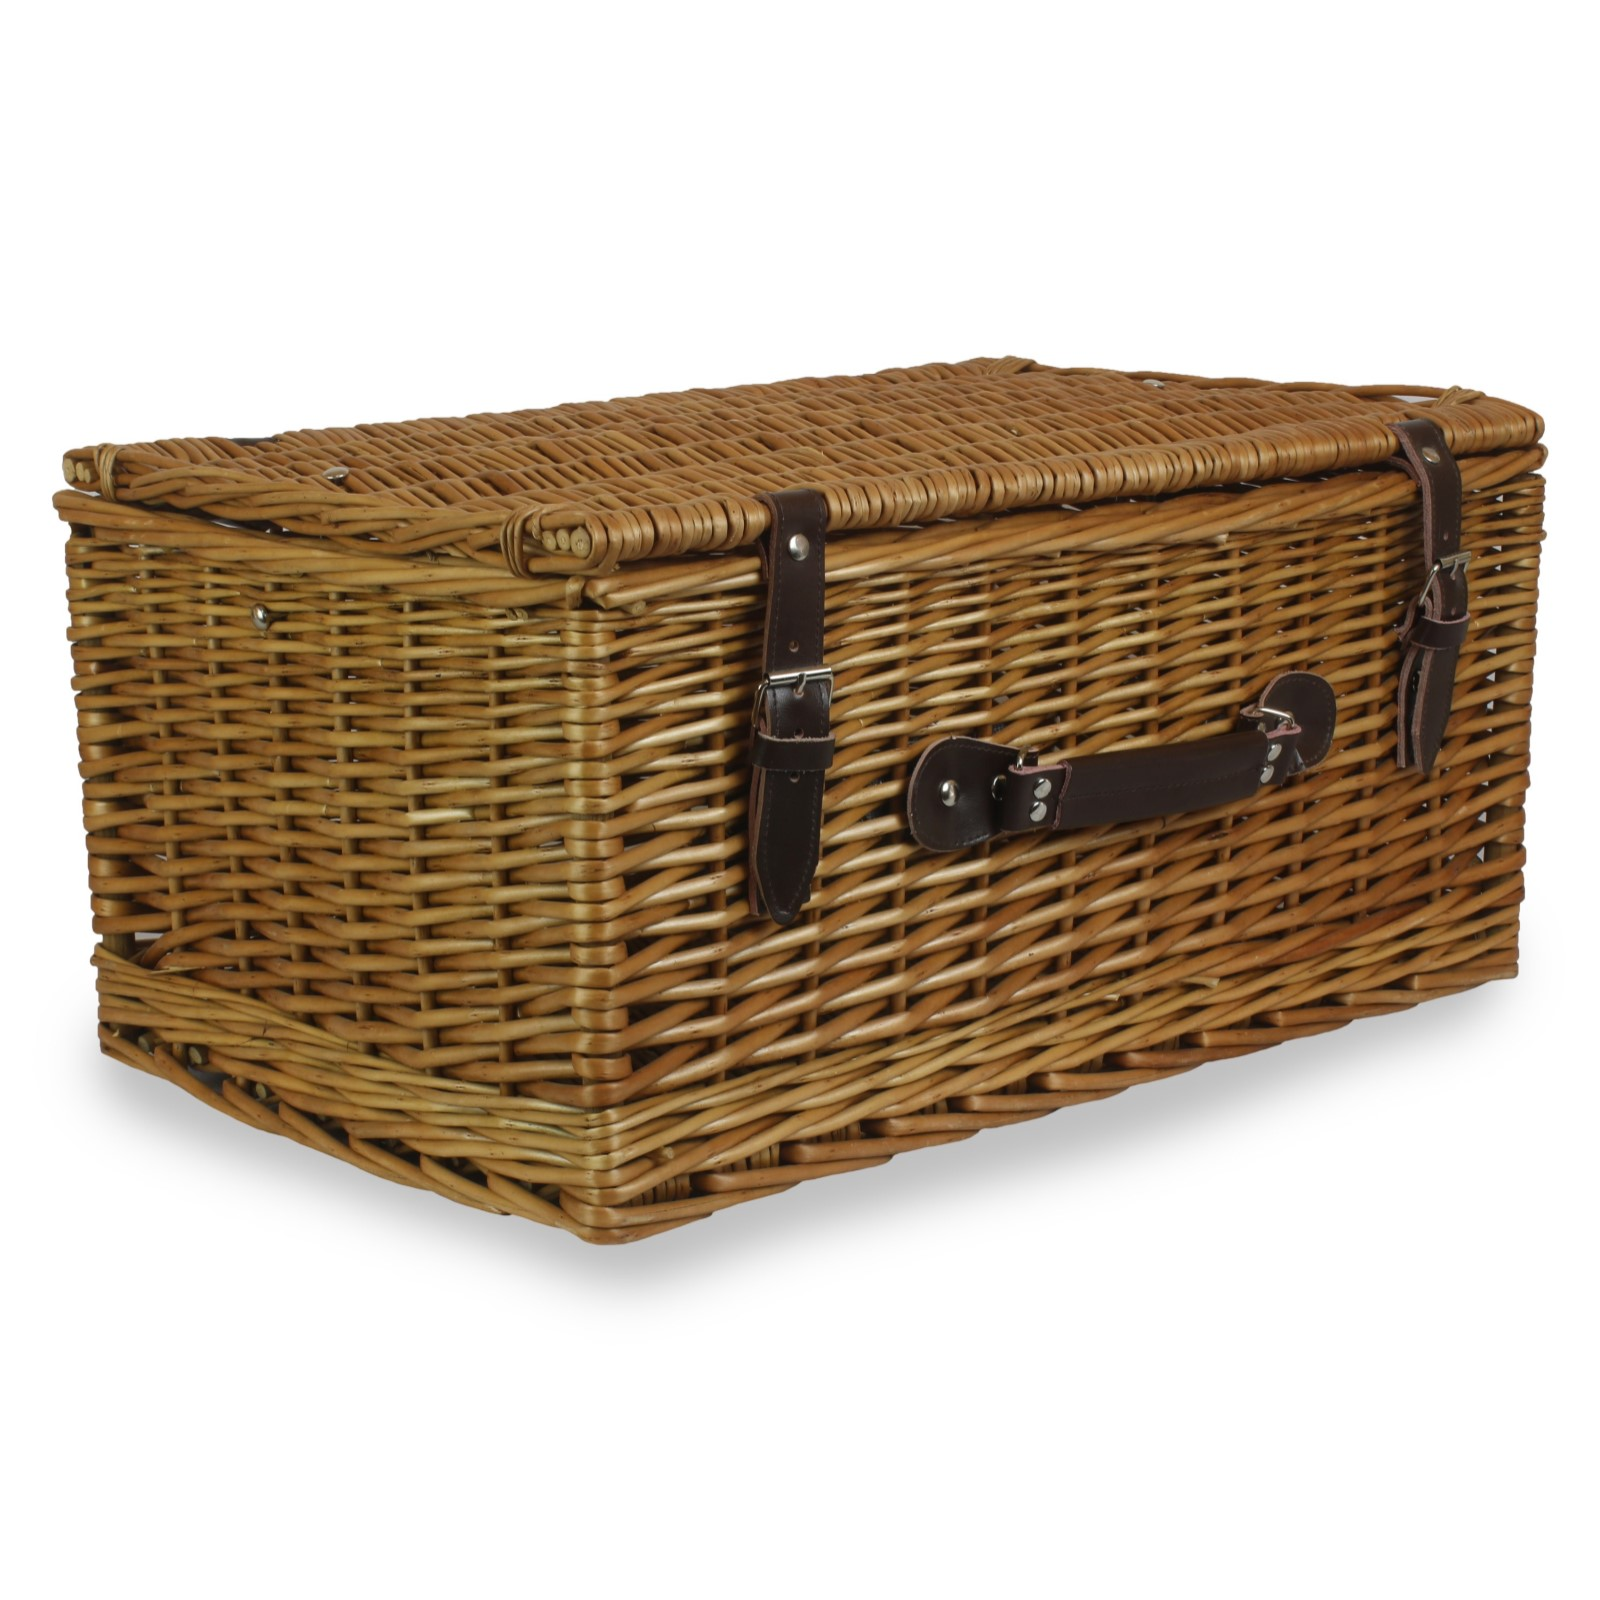 20 Inch Traditional Wicker Hamper Basket Cotswolds Hampers